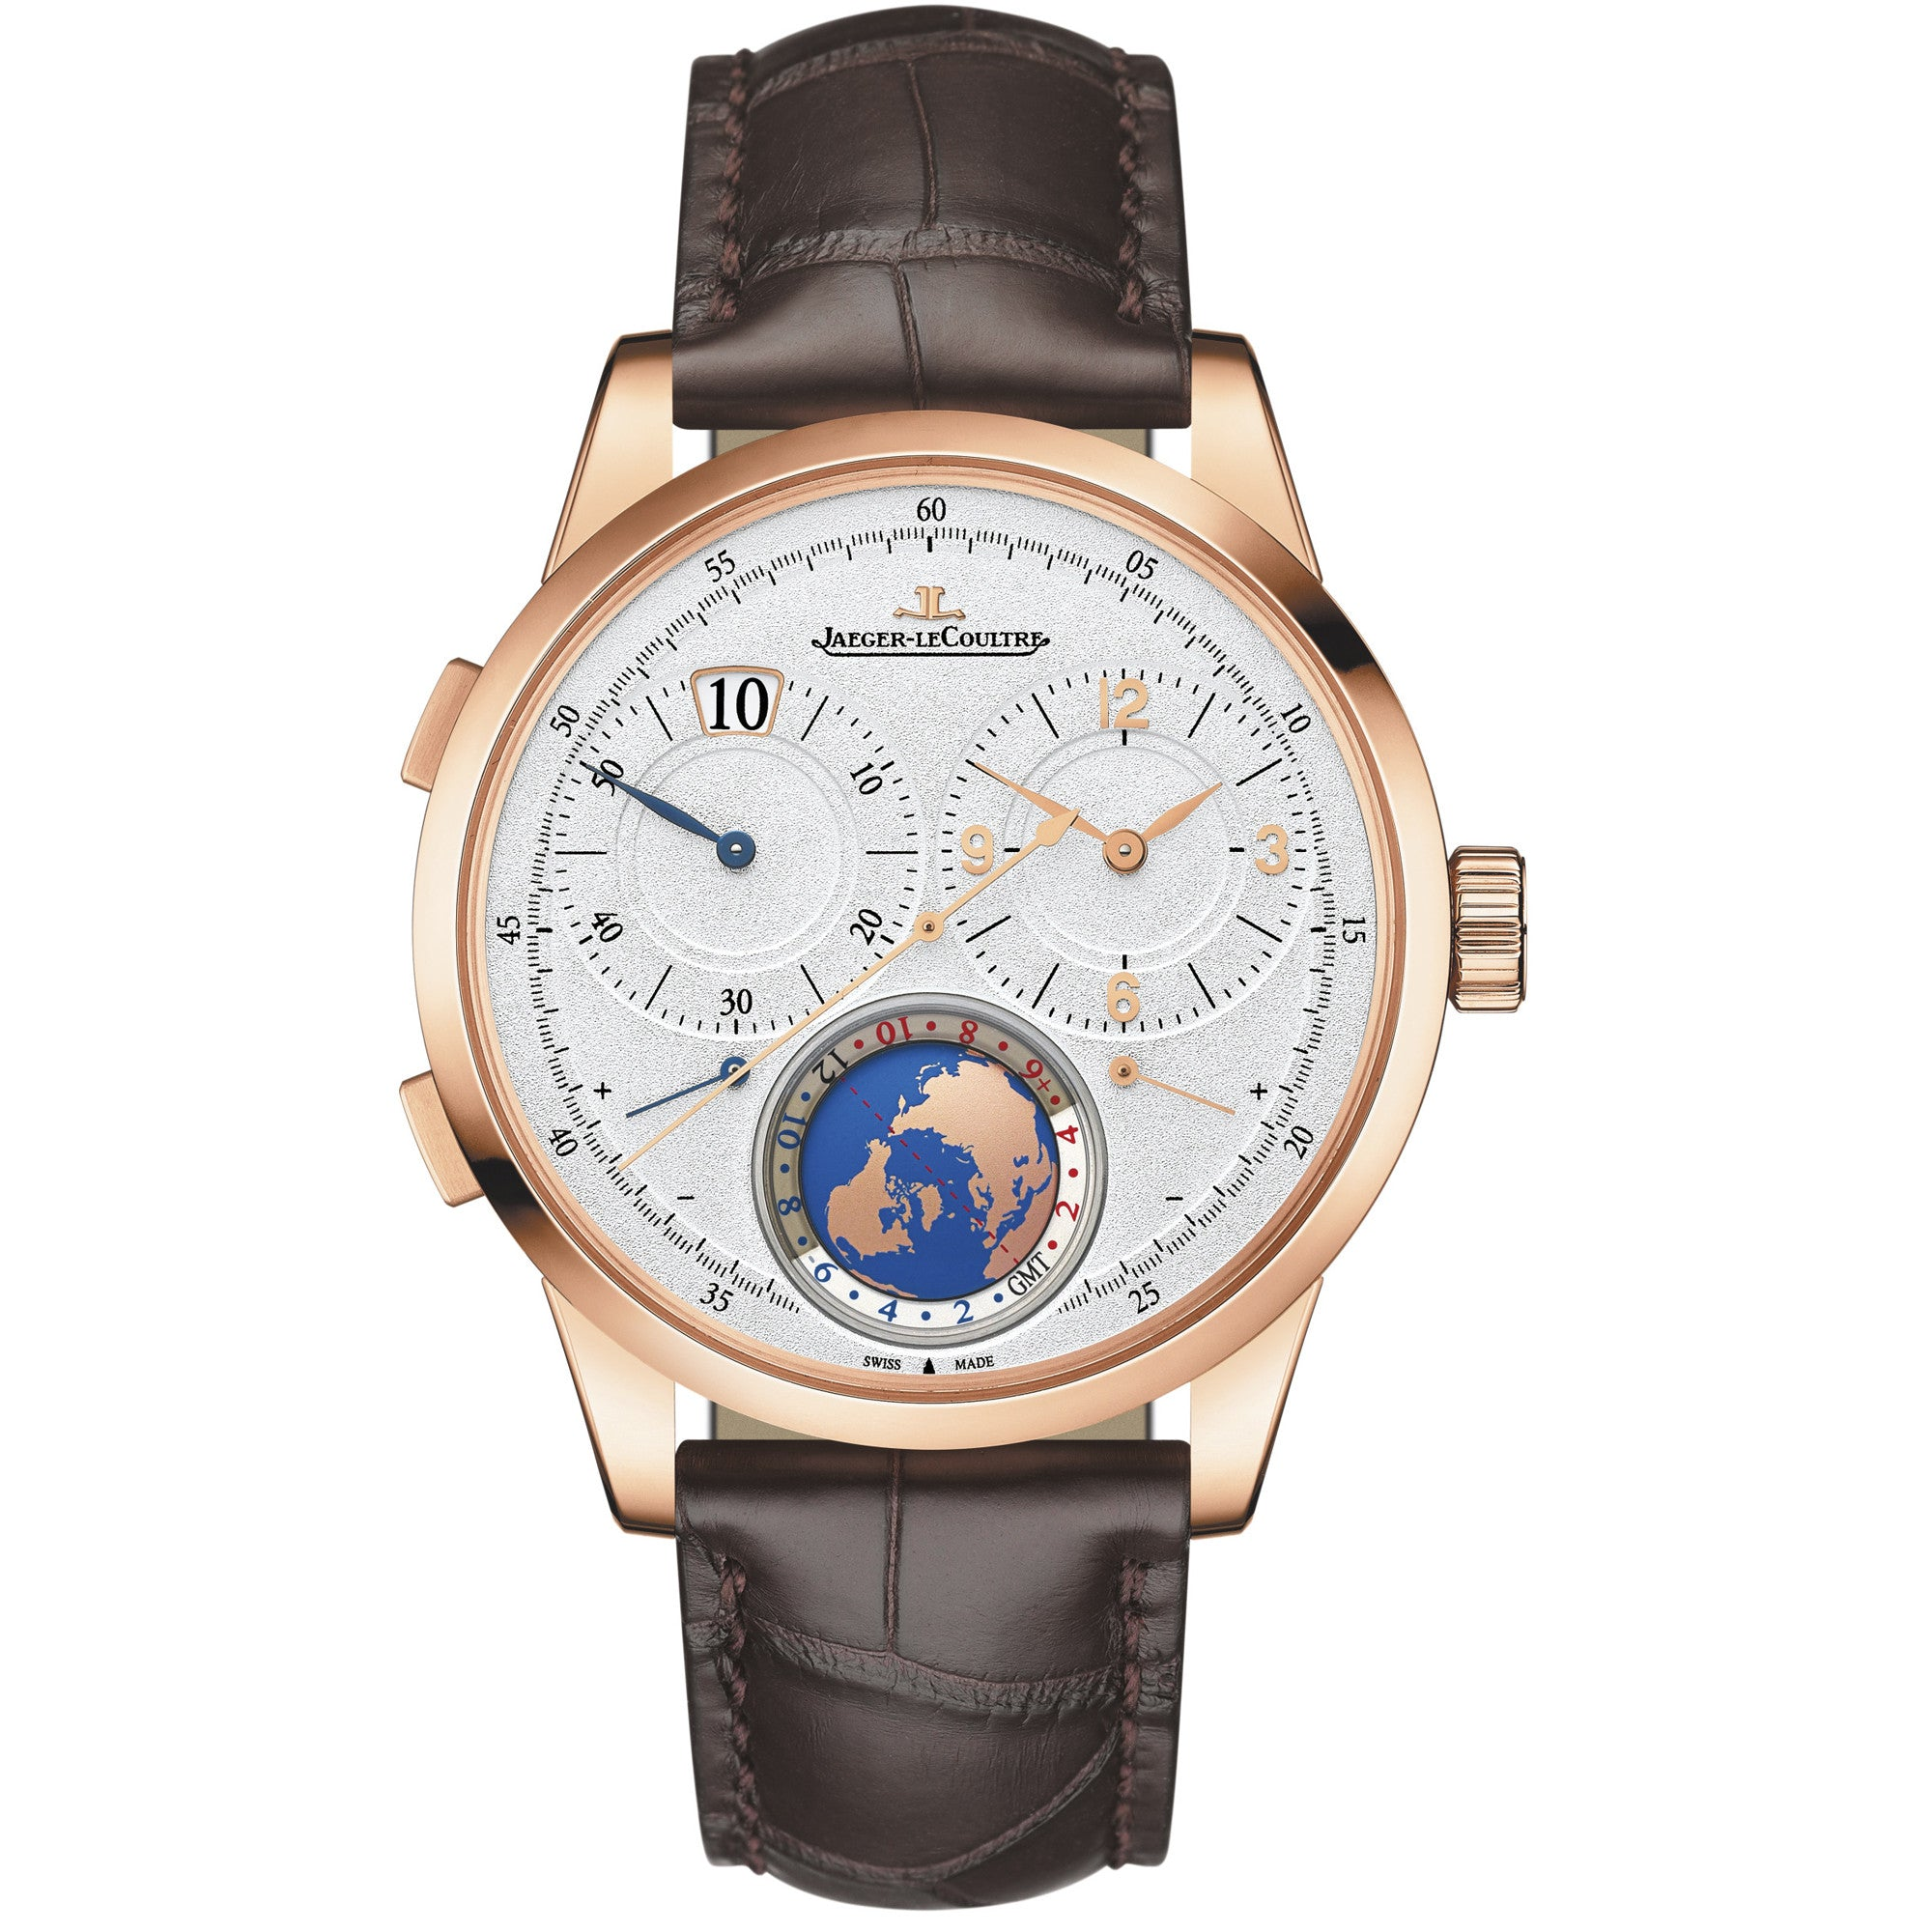 Duometre Unique Travel Time Men's Watch